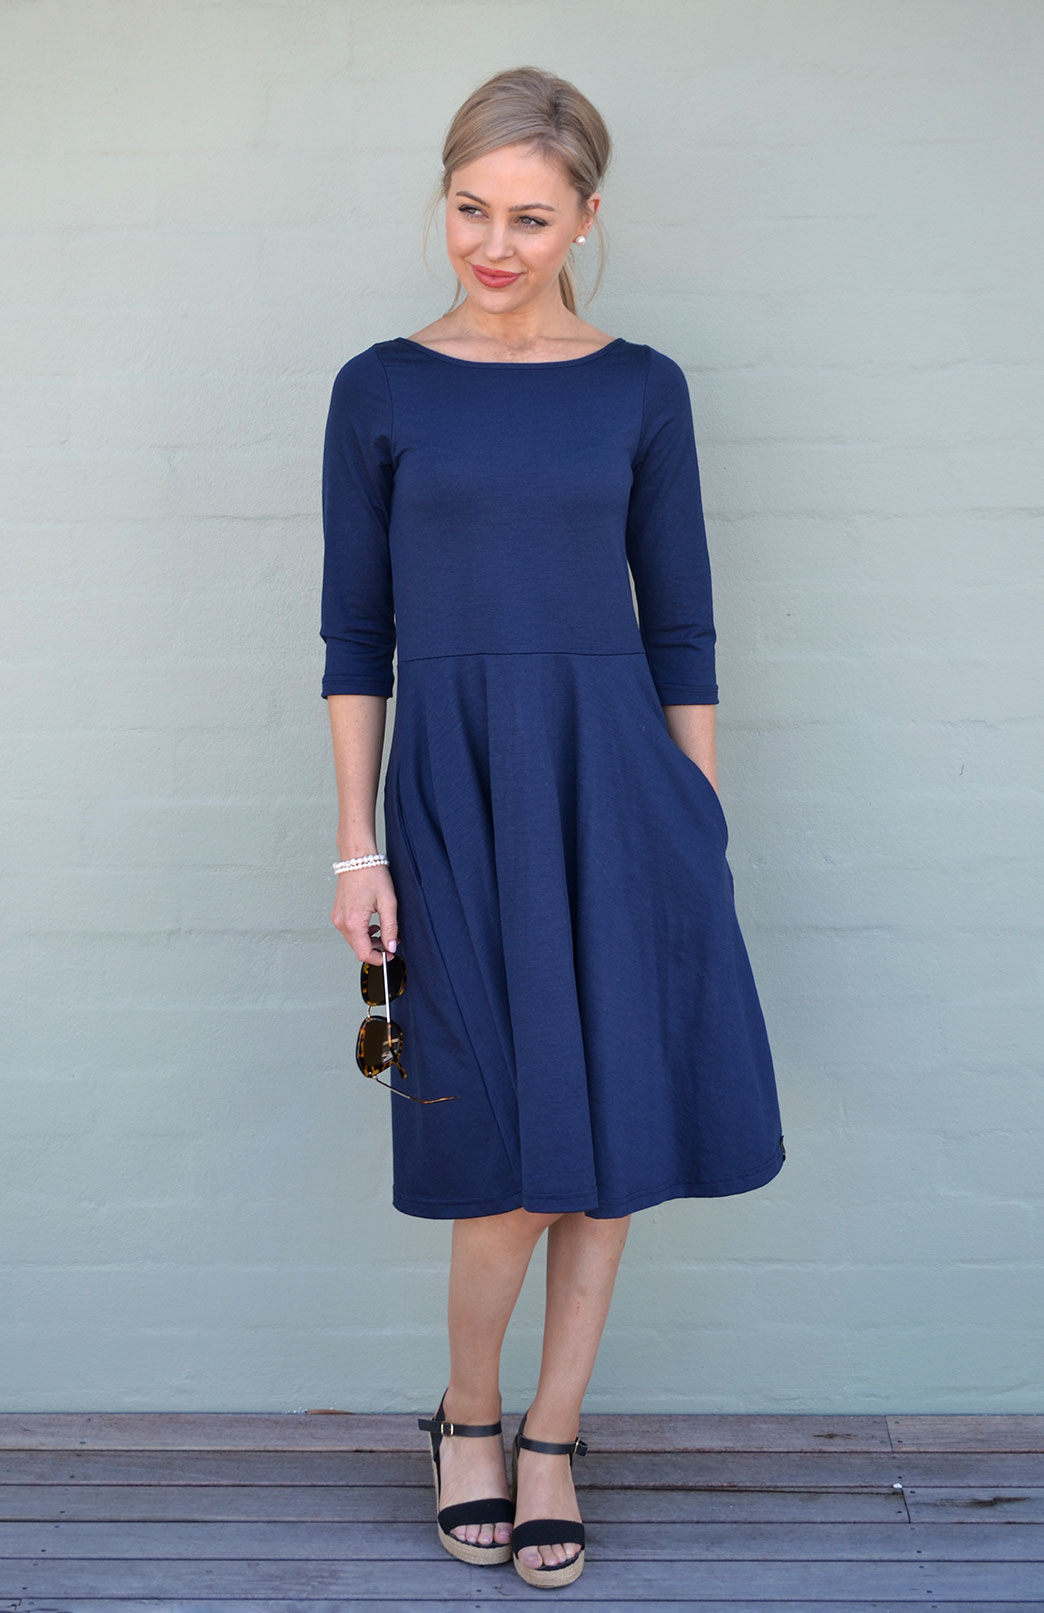 Mary Dress - Women's Indigo Blue Knee Length 3/4 Sleeved Fit and Flare Merino Wool Dress with Pockets - Smitten Merino Tasmania Australia